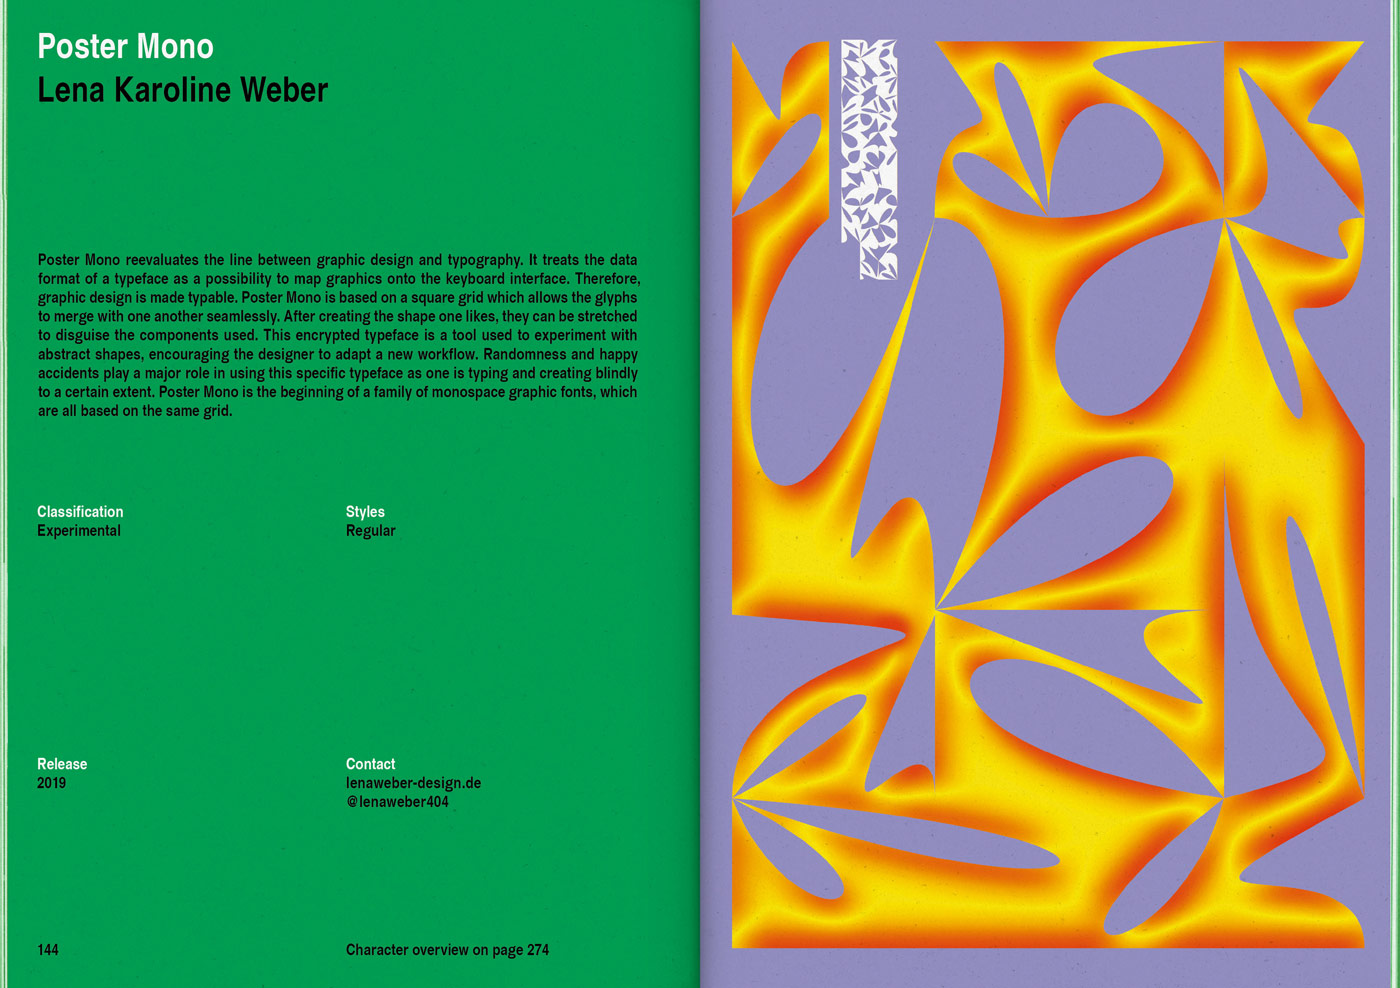 07 collide24 New Aesthetic 2 - Sophia Brinkgerd and Leonhard Laupichler celebrate the release of New Aesthetic 2, this time in collaboration with publishing house Sorry Press